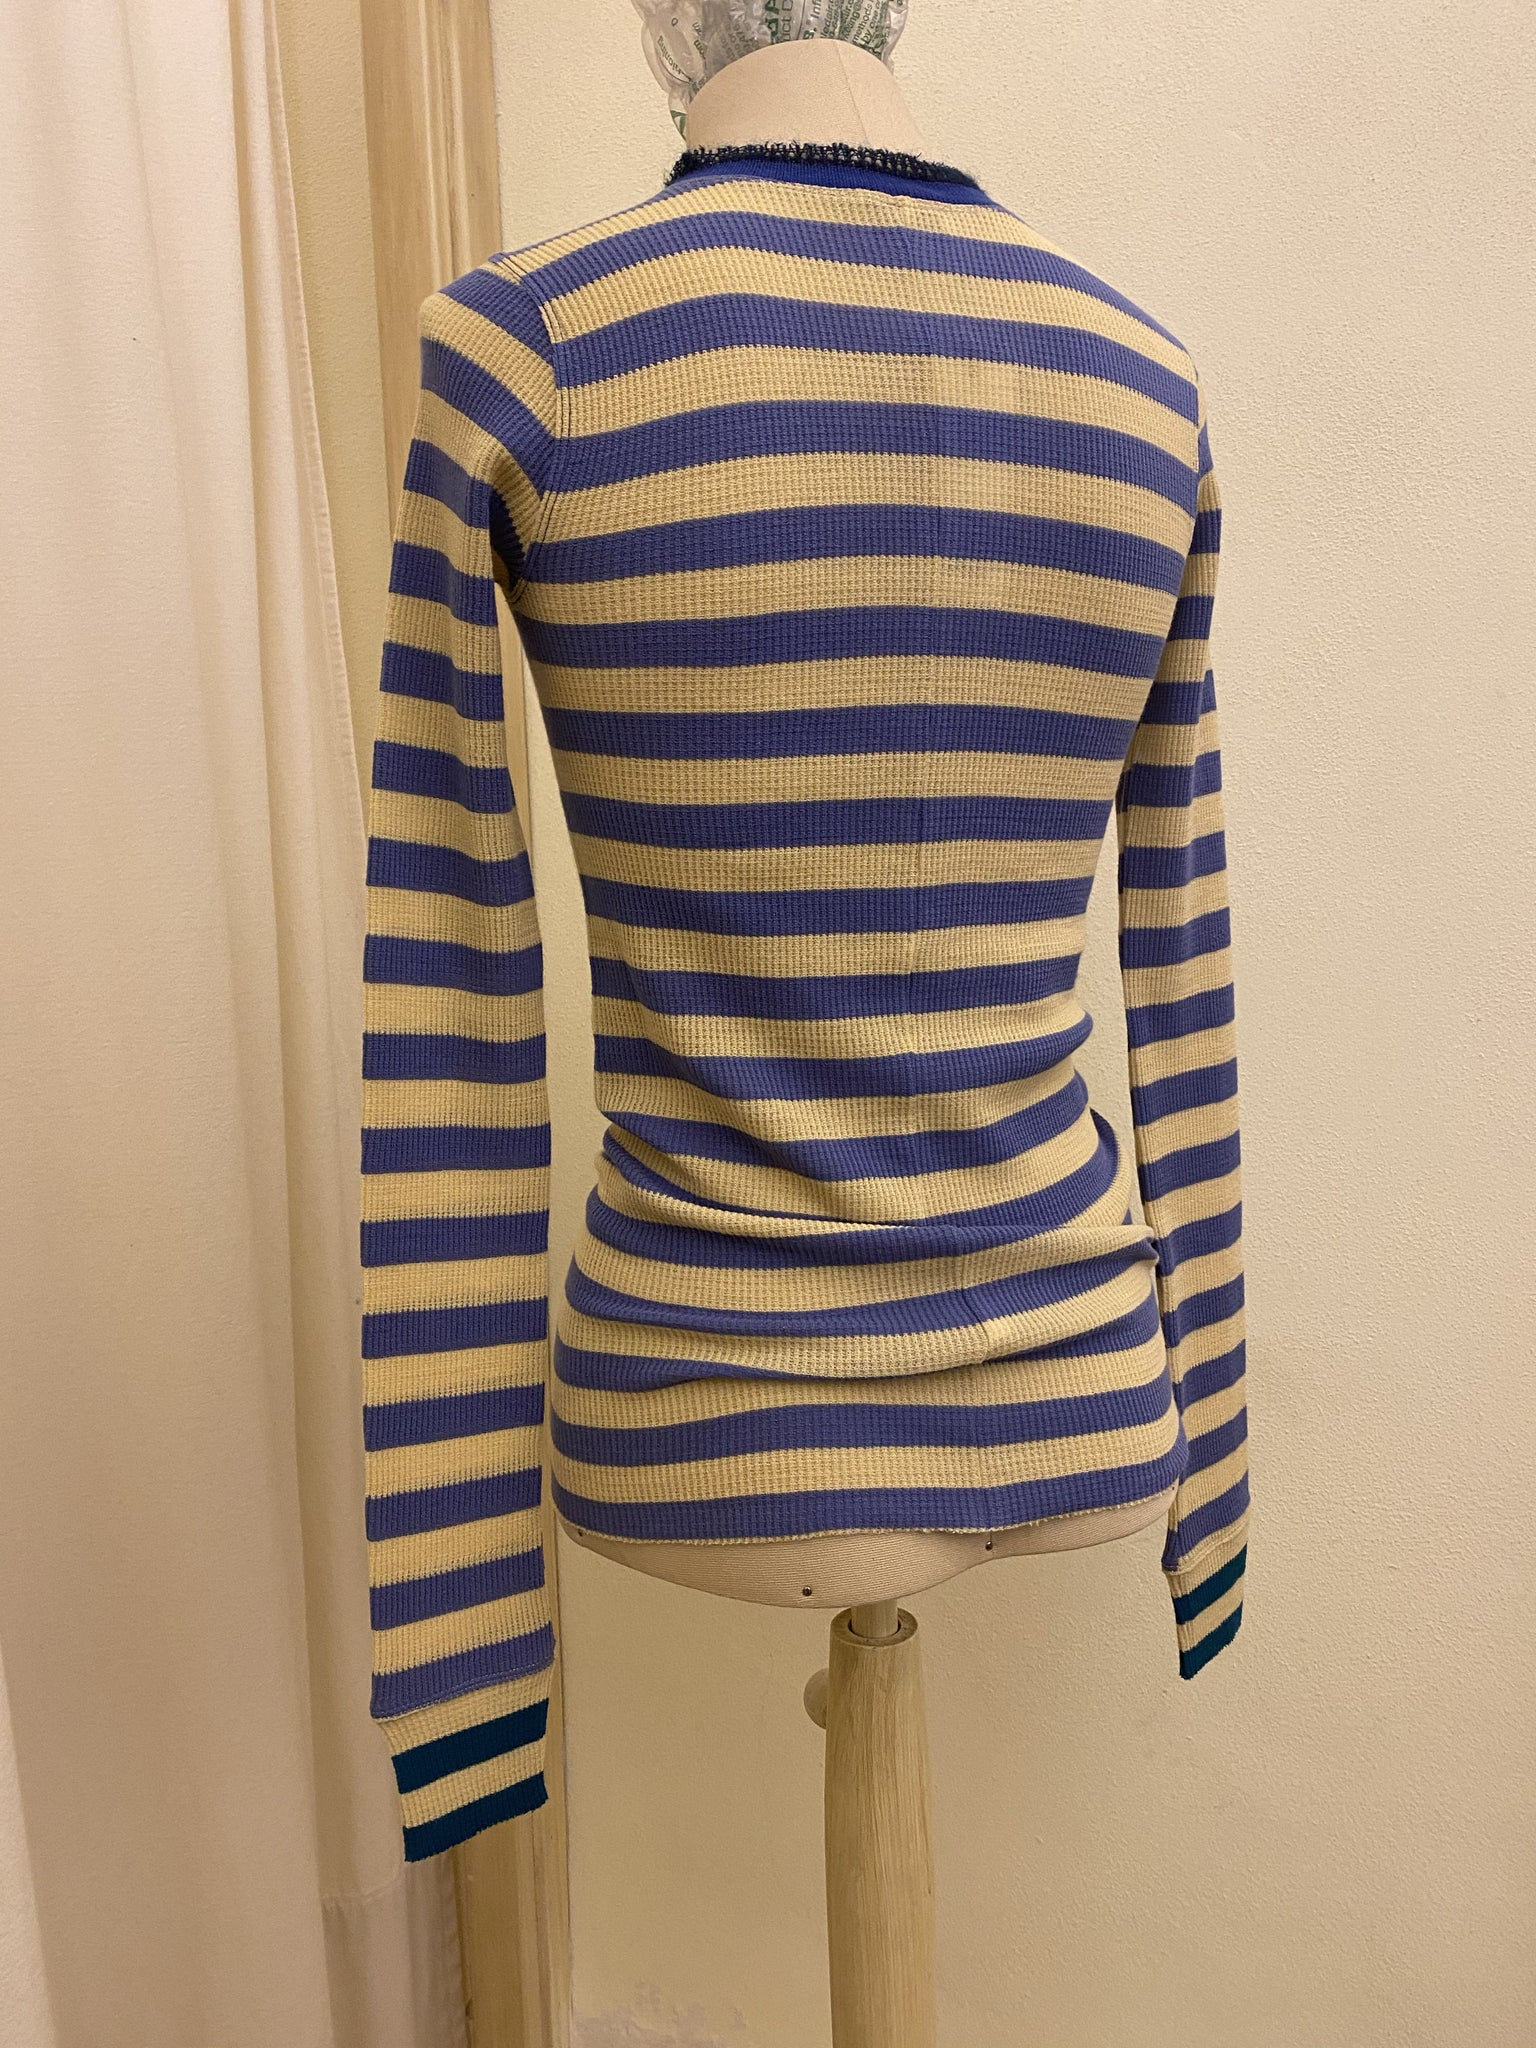 T-shirt Lana / Wool FORTE FORTE _ Stripes Blue